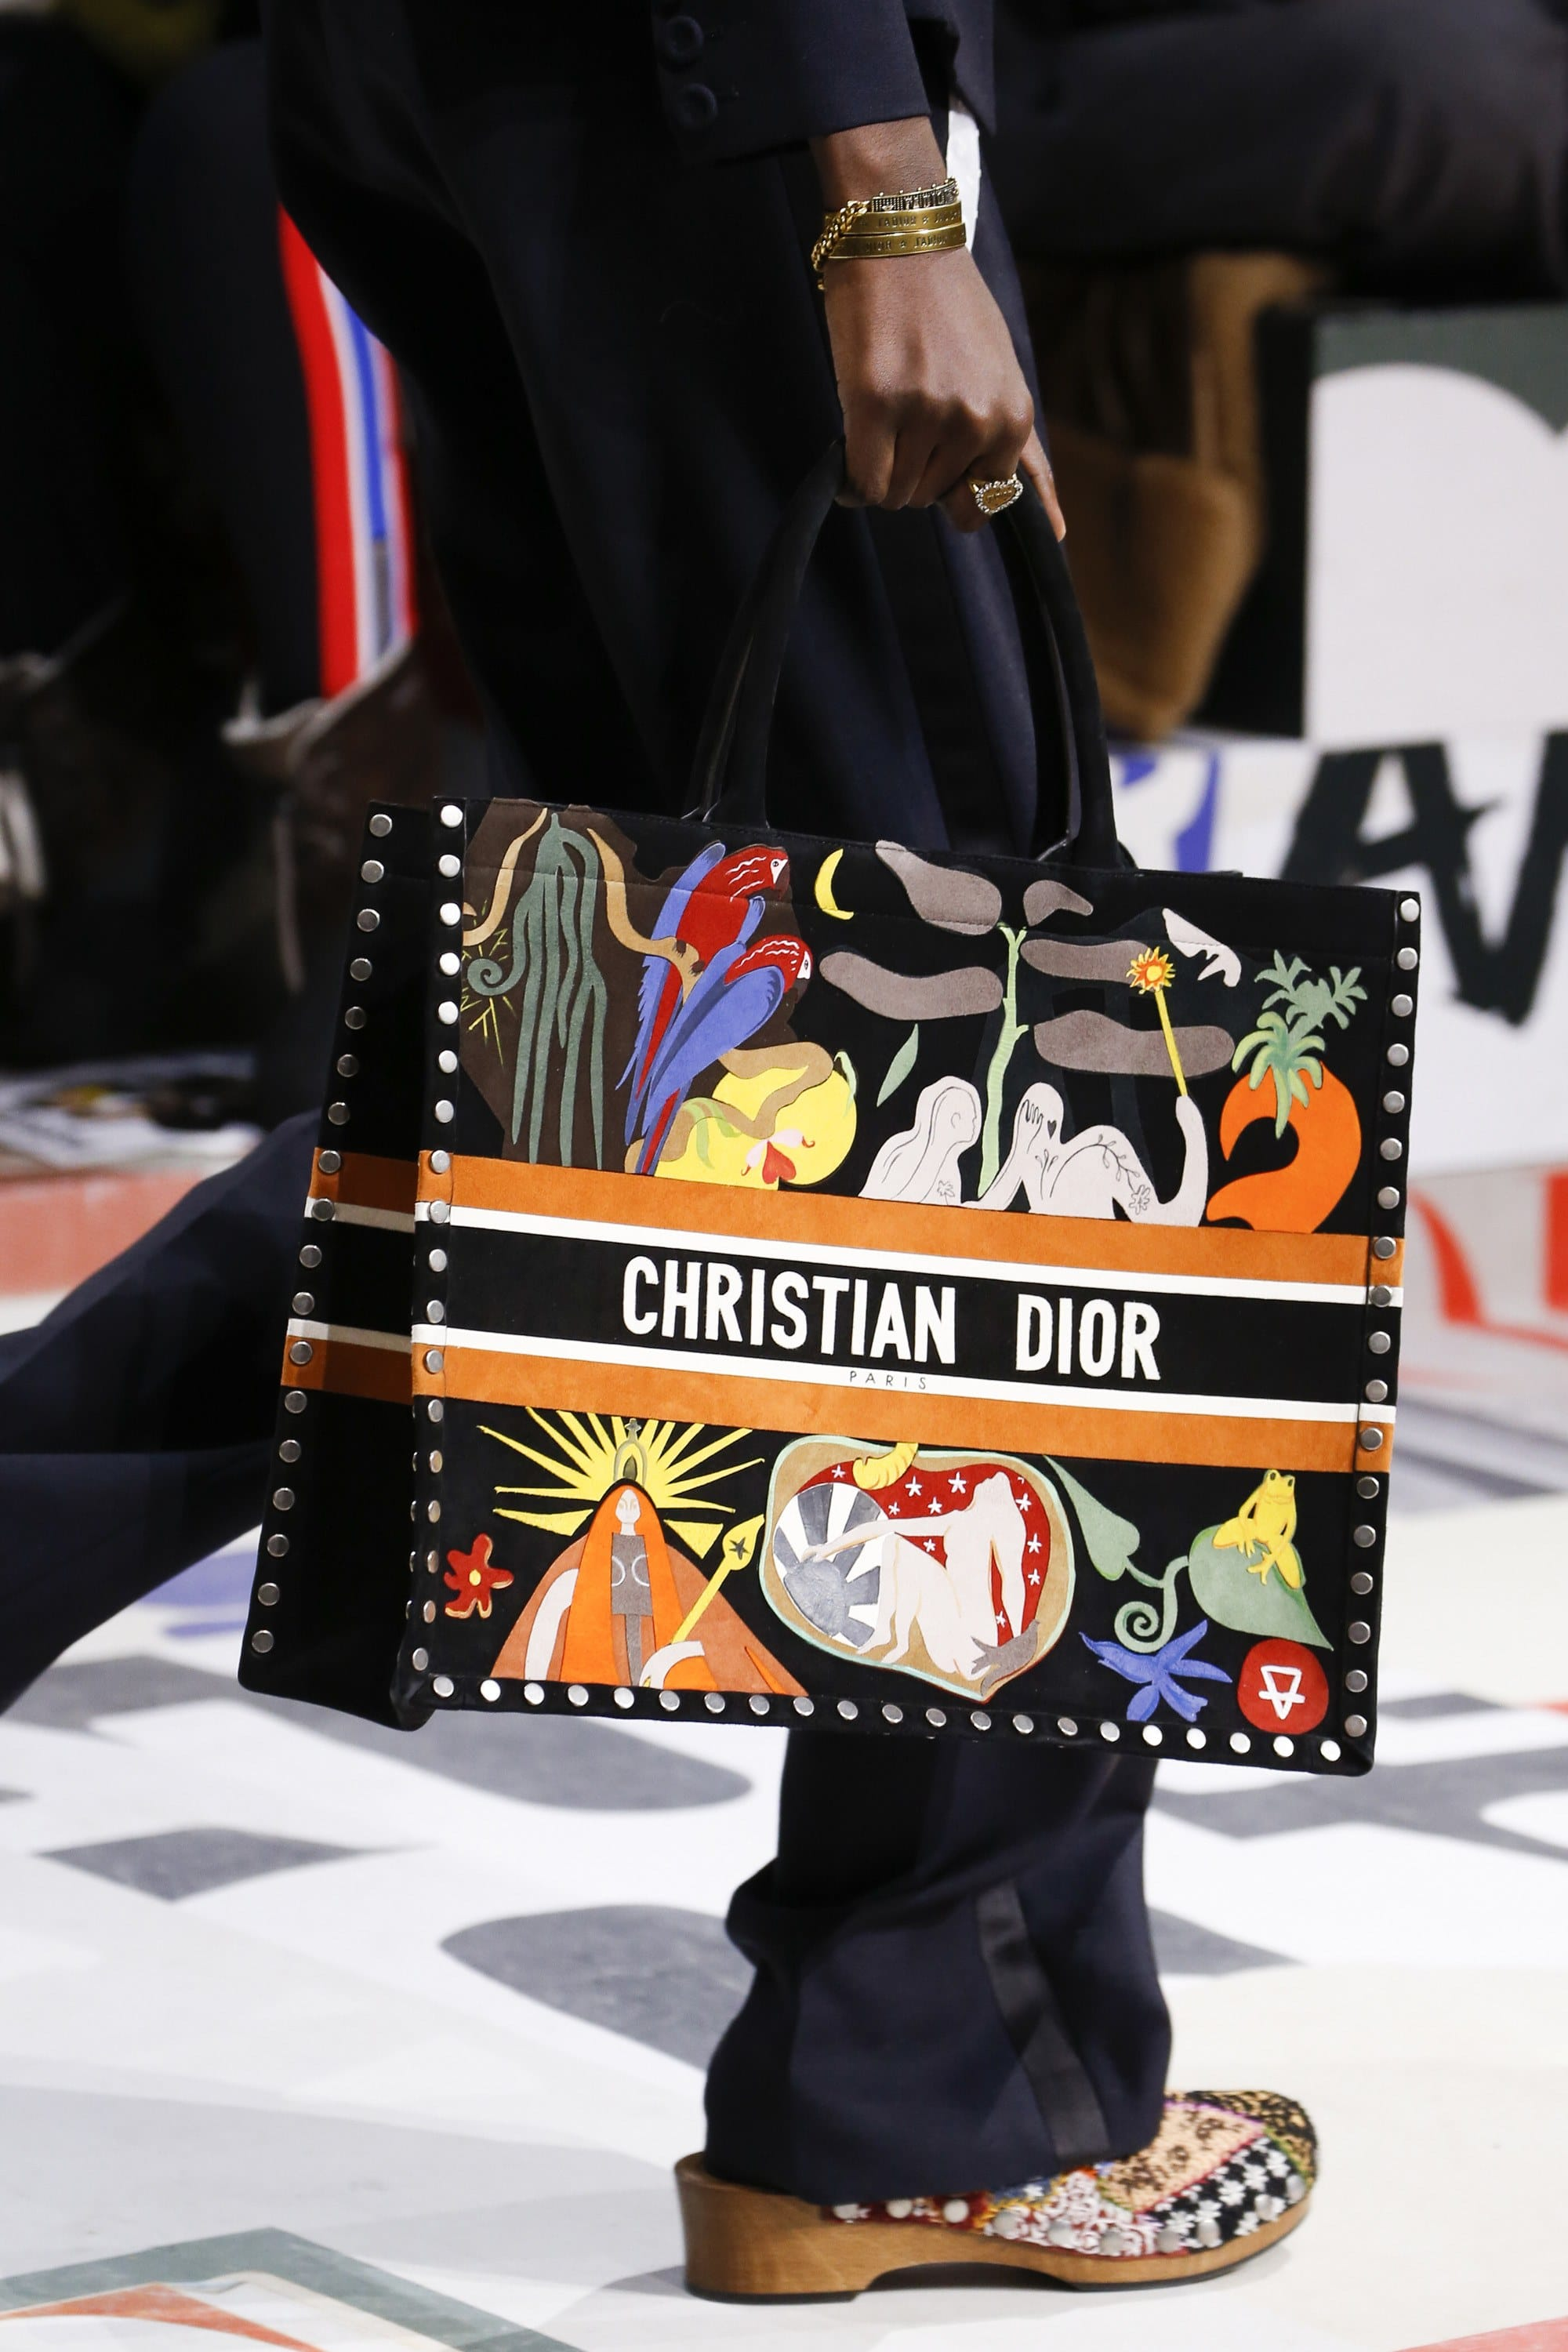 39035c300336 Dior Fall Winter 2018 Runway Bag Collection featuring Saddle Bags ...